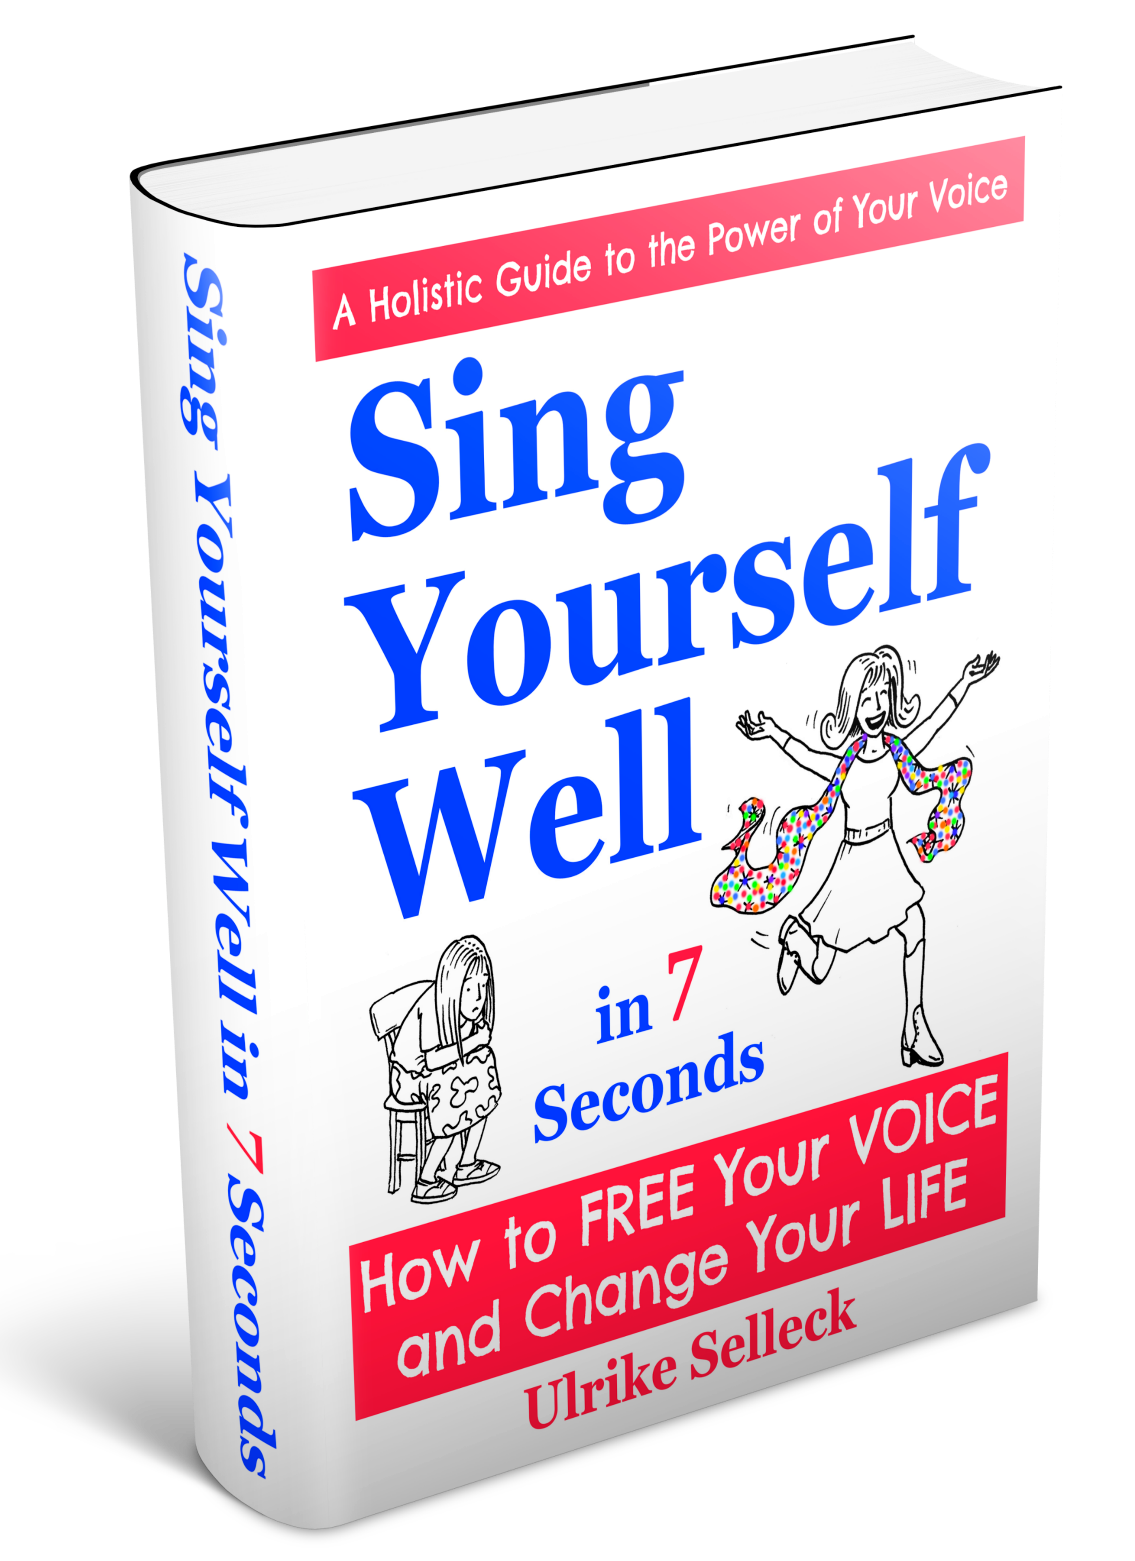 Ulrike Selleck Sing Yourself Well in 7 Seconds